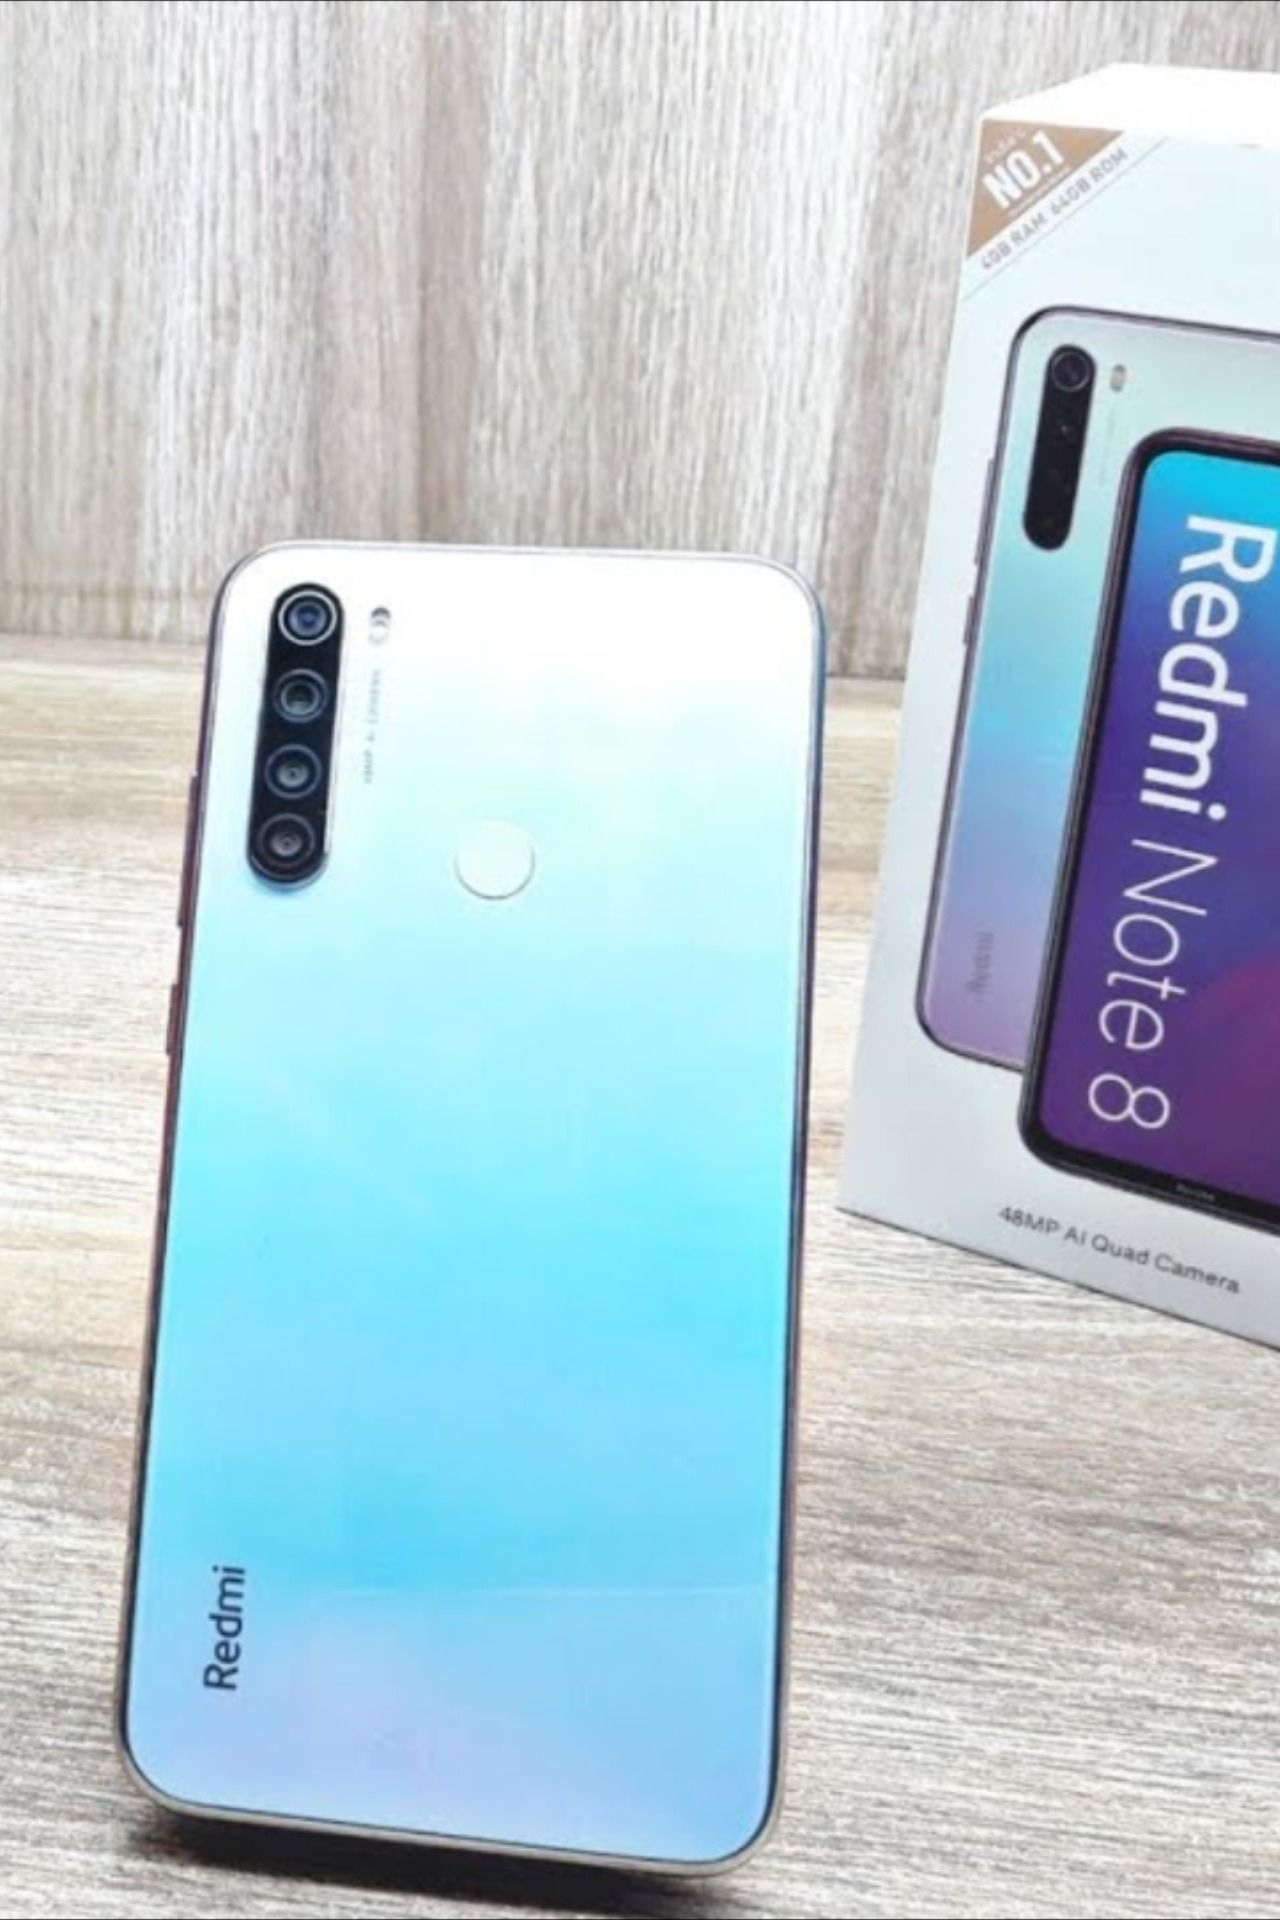 132 Coupon For Xiaomi Redmi Note 8 Iphone Offers Cell Phones For Sale Xiaomi